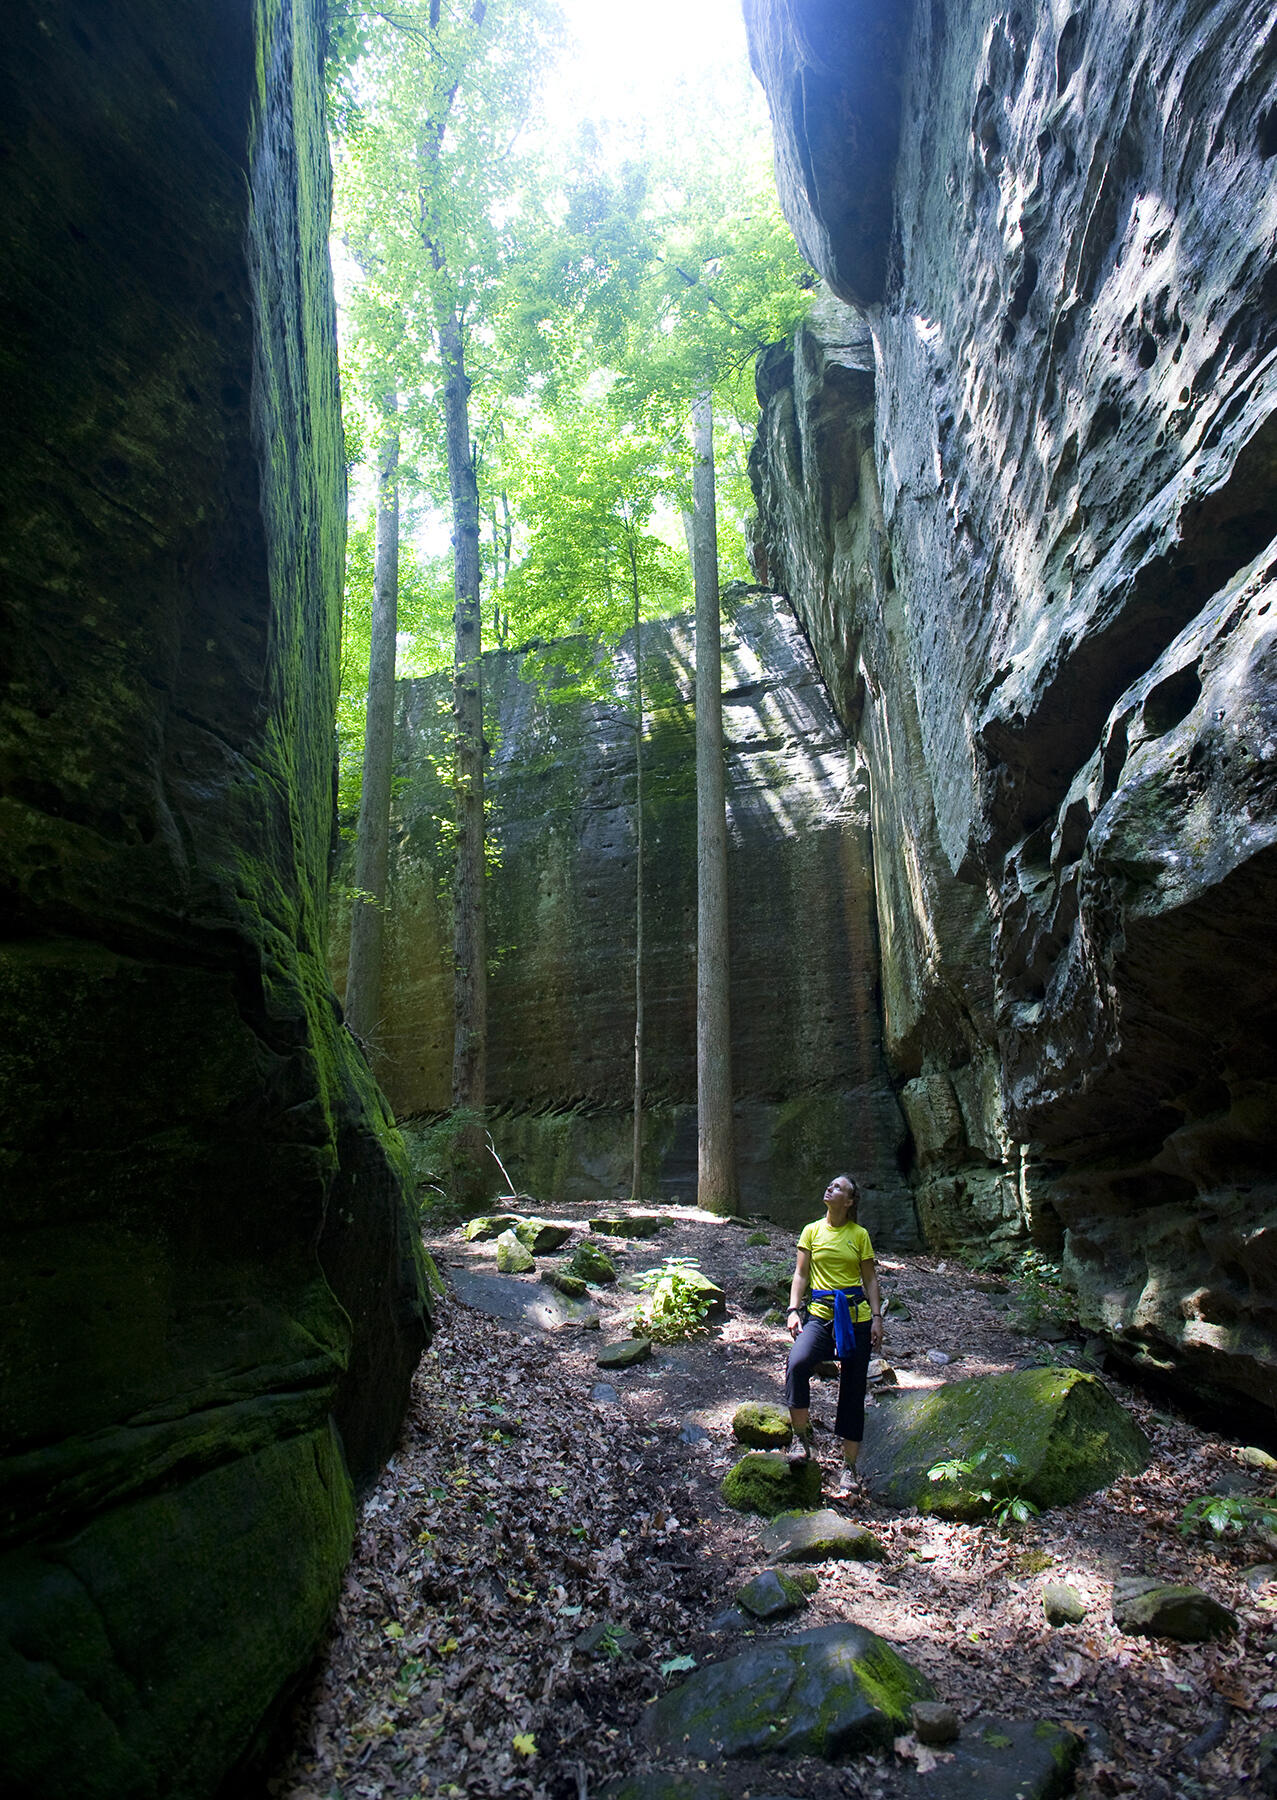 Shawnee National Forest, Southern Illinois. Bennett Barthelemy/Tandemstock.com